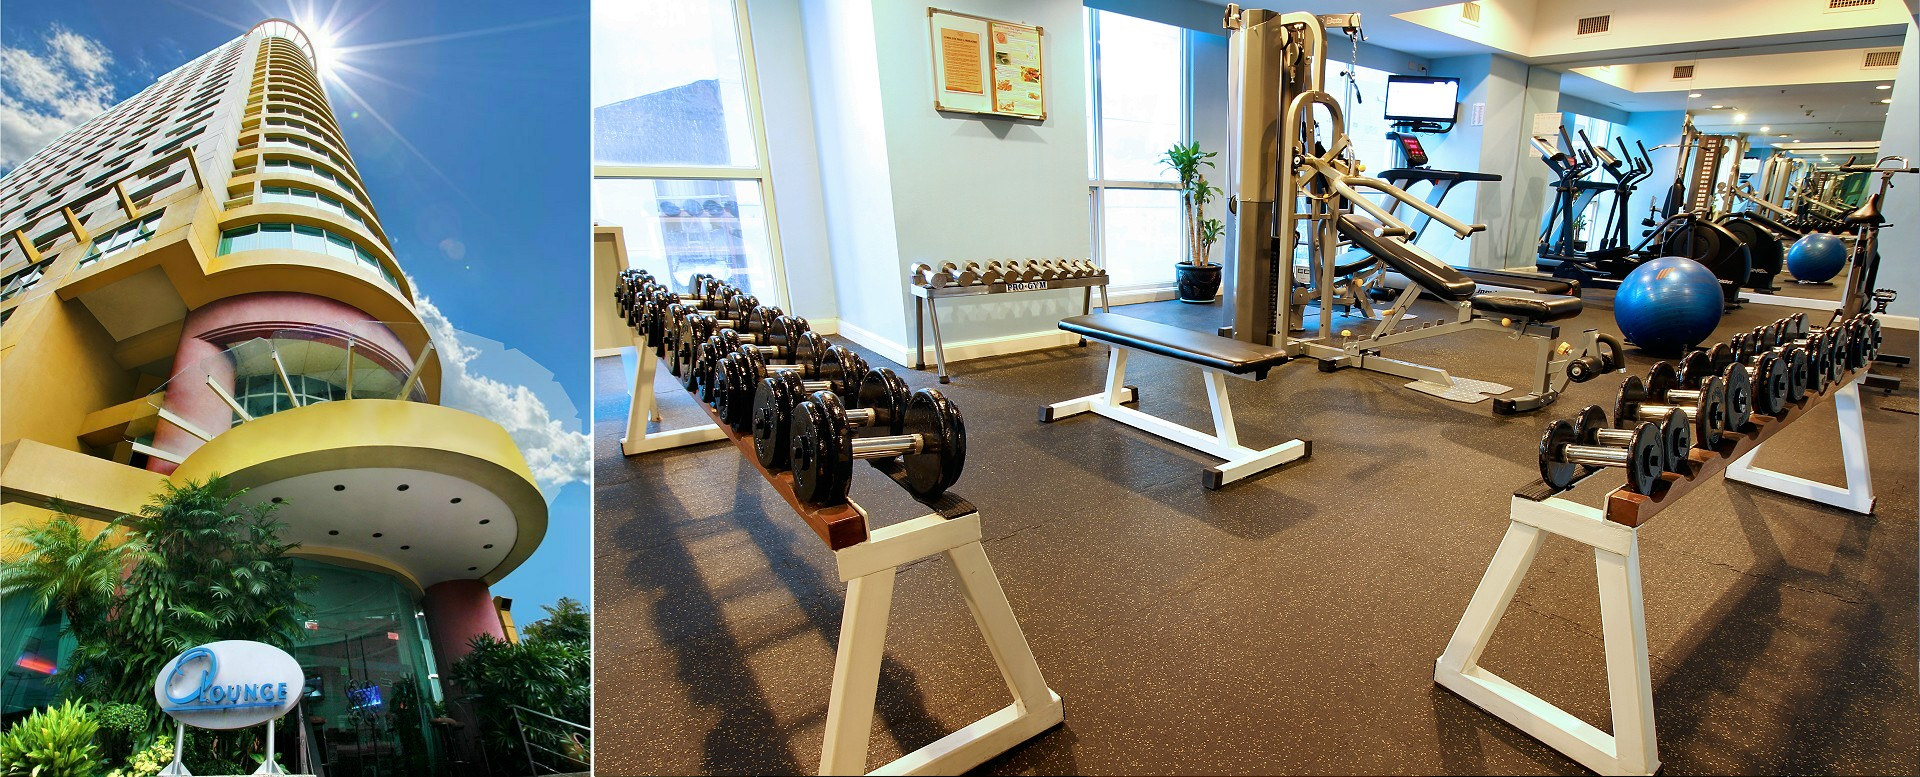 Oxford Suites Makai - Fitness Room